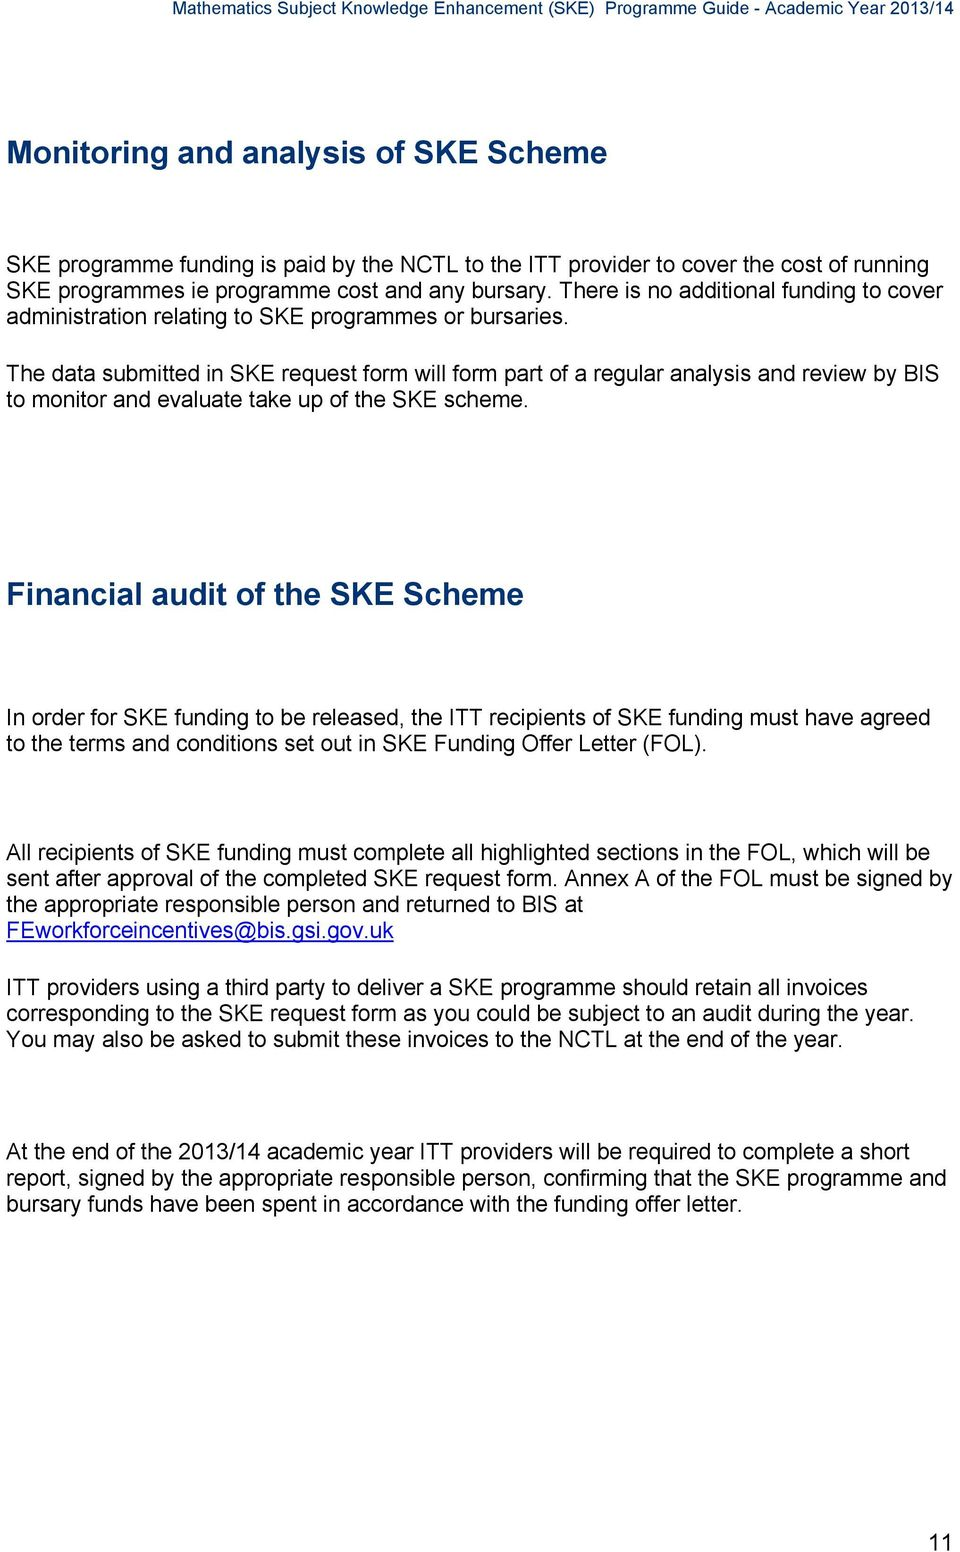 The data submitted in SKE request form will form part of a regular analysis and review by BIS to monitor and evaluate take up of the SKE scheme.